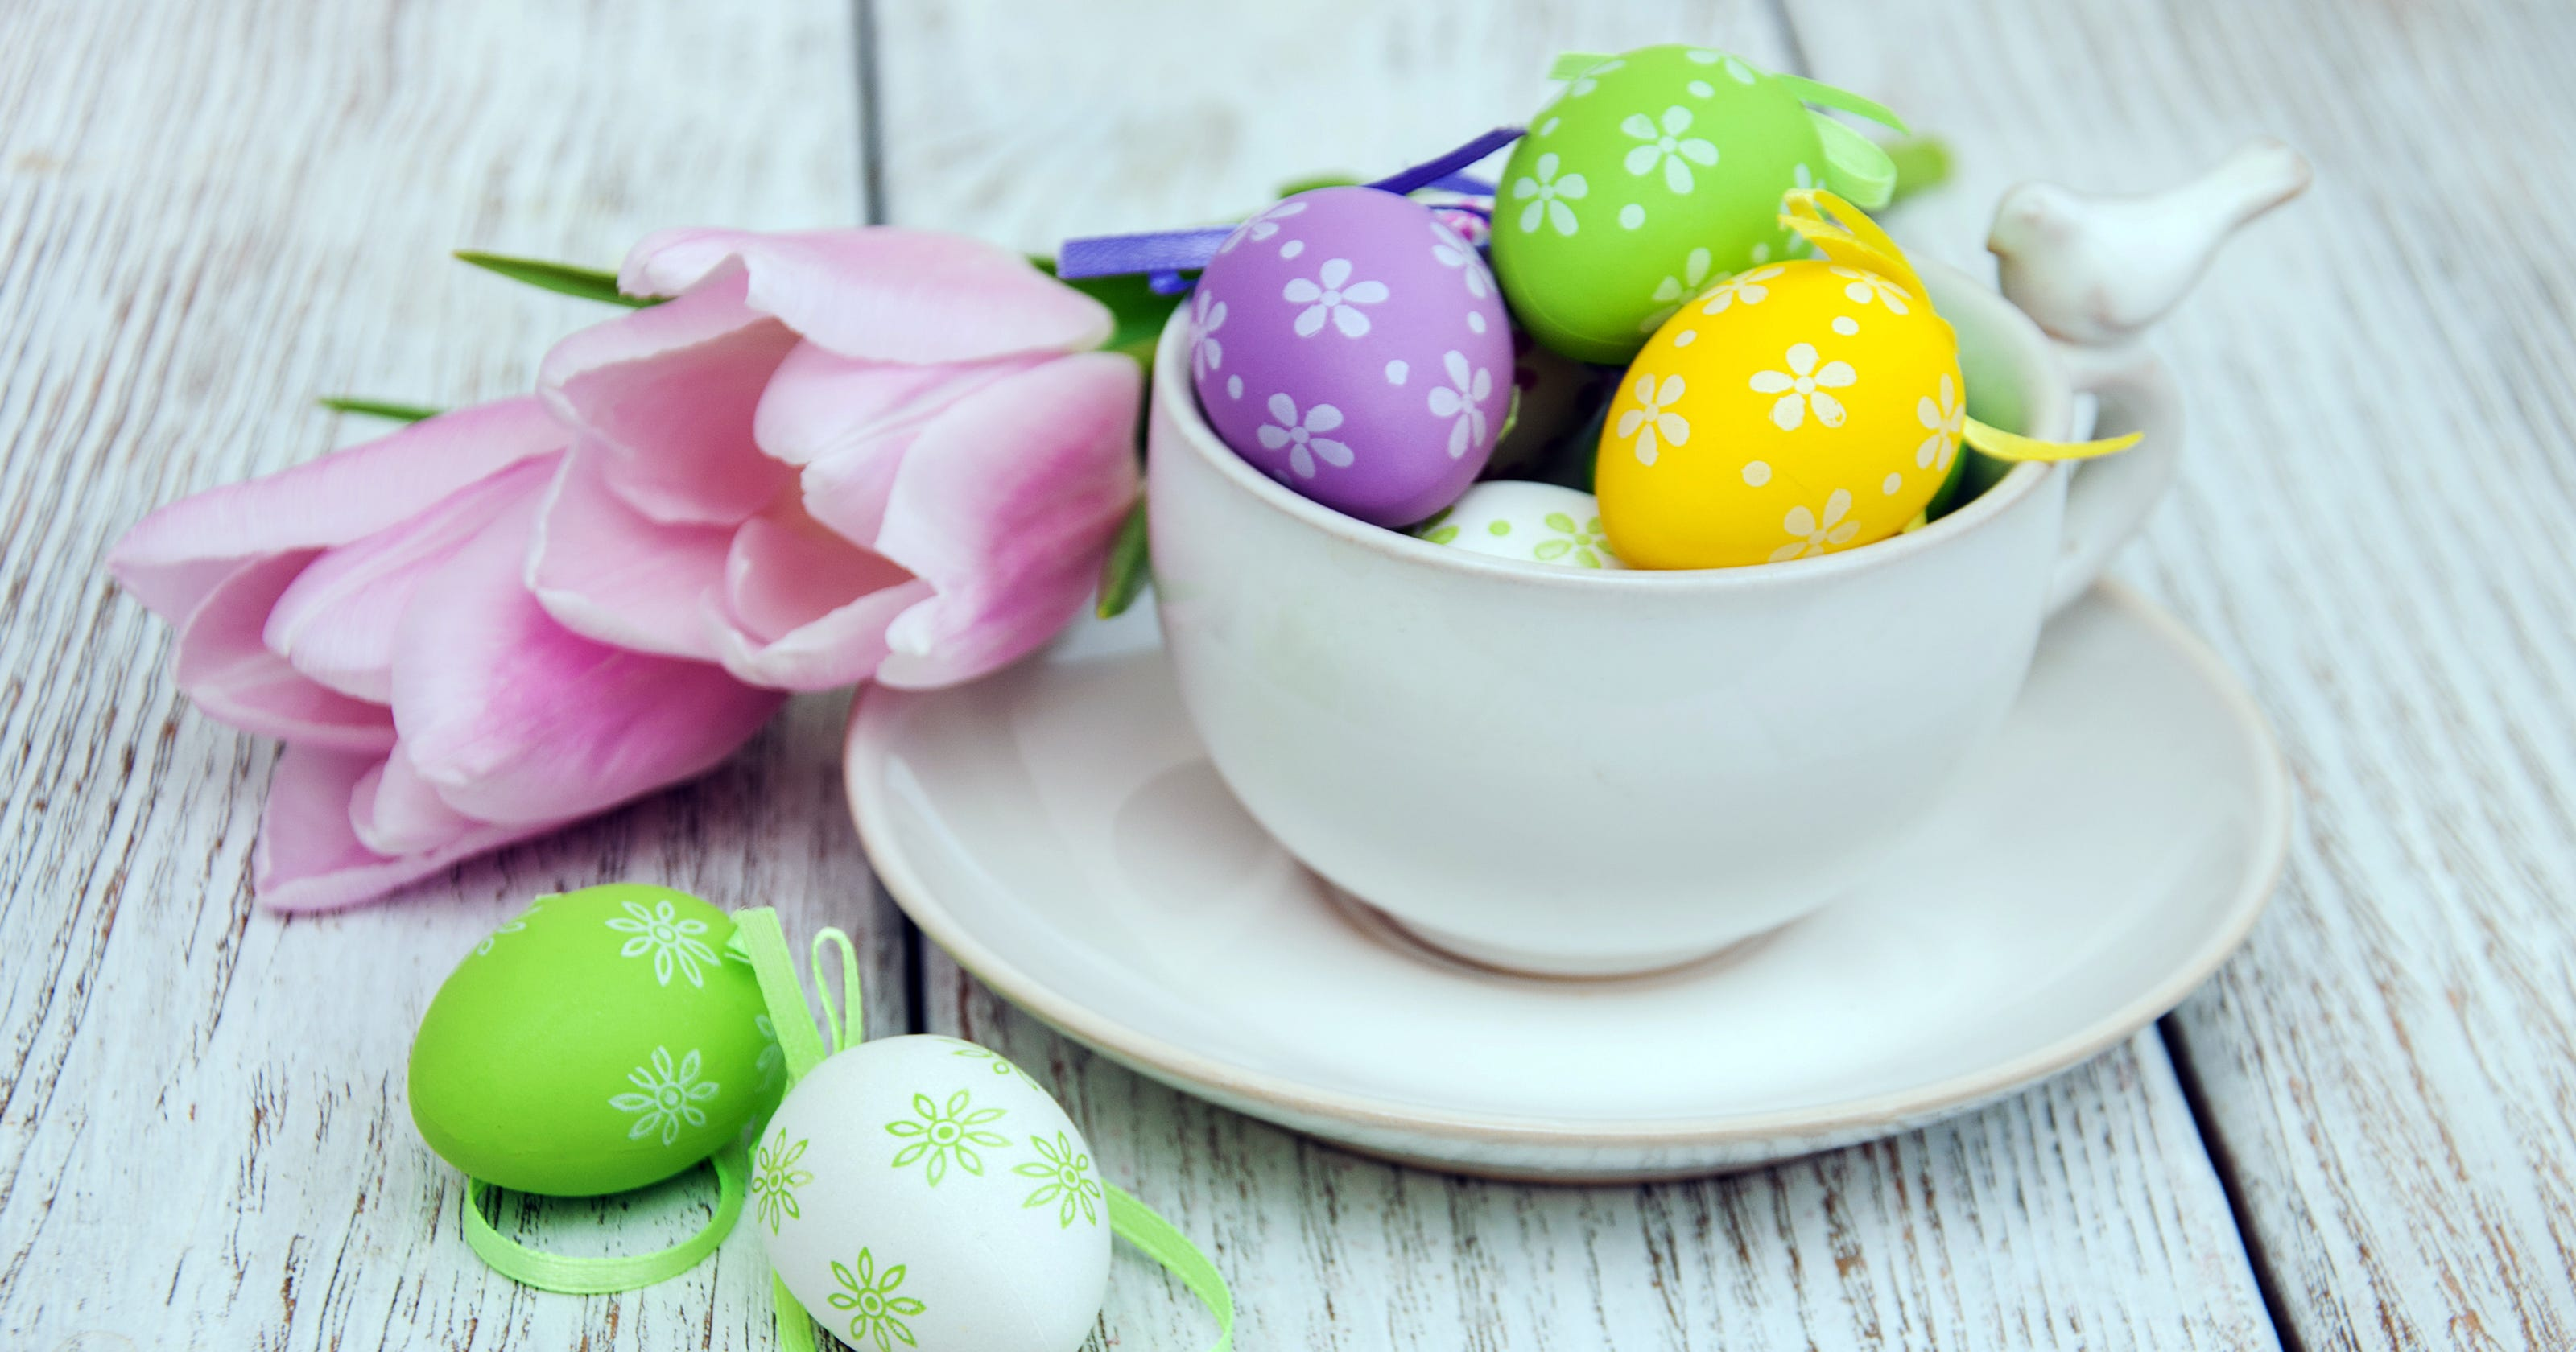 Easter Dining Holiday Brunch And Dinner Specials In Southwest Florida